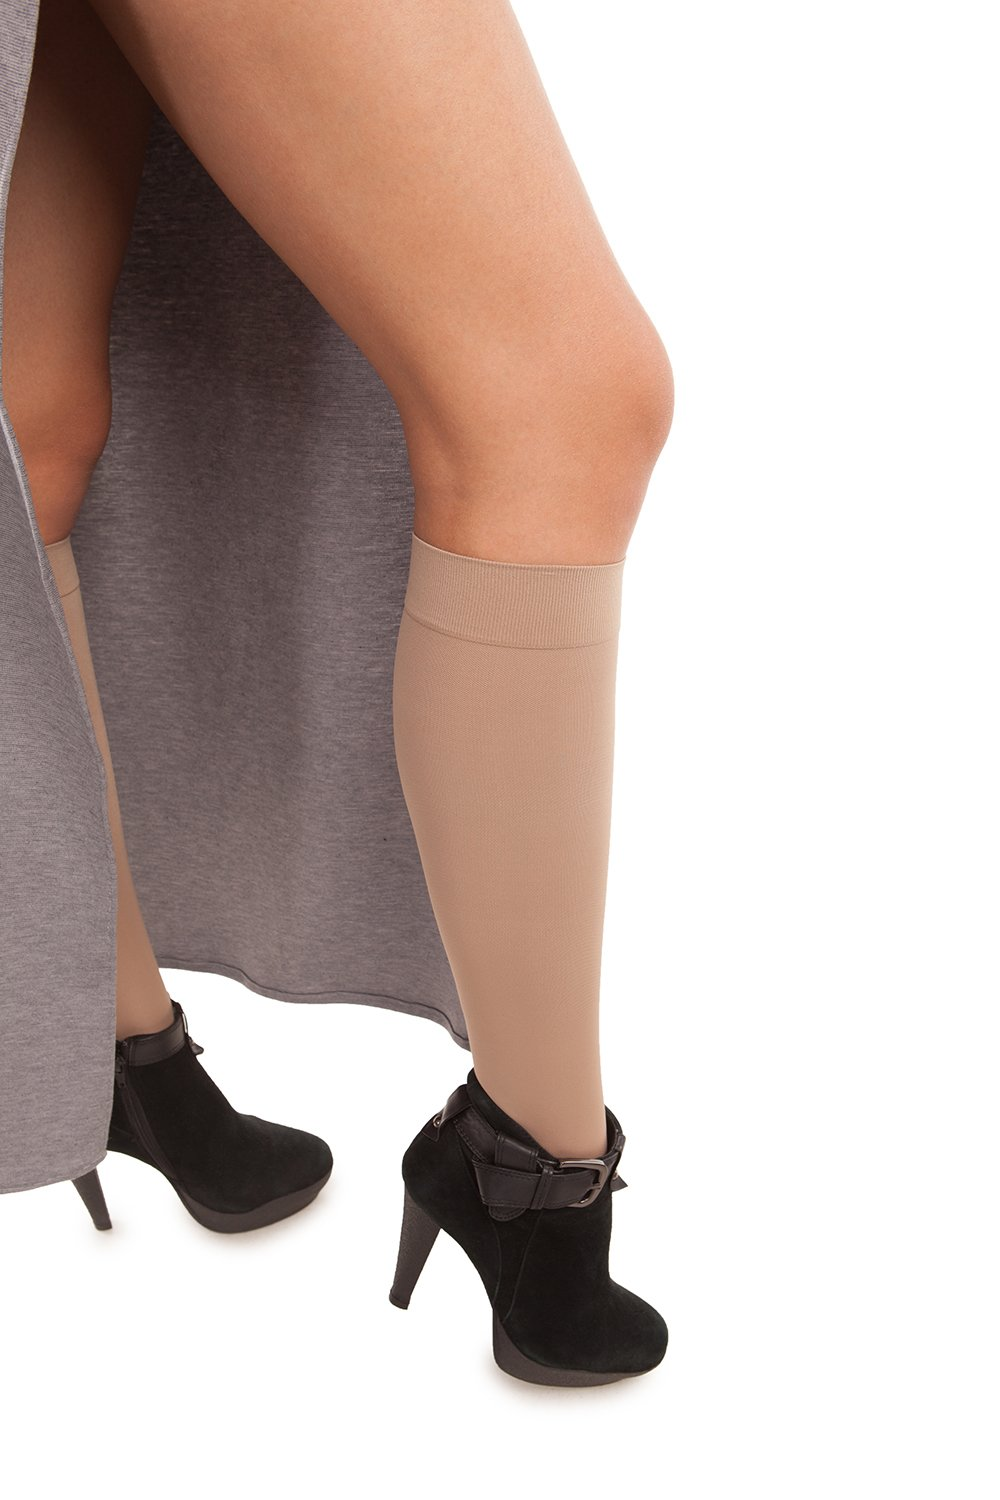 Microfiber Knee Highs - Strong Compression - 25 to 35 mmHg - Gabrialla